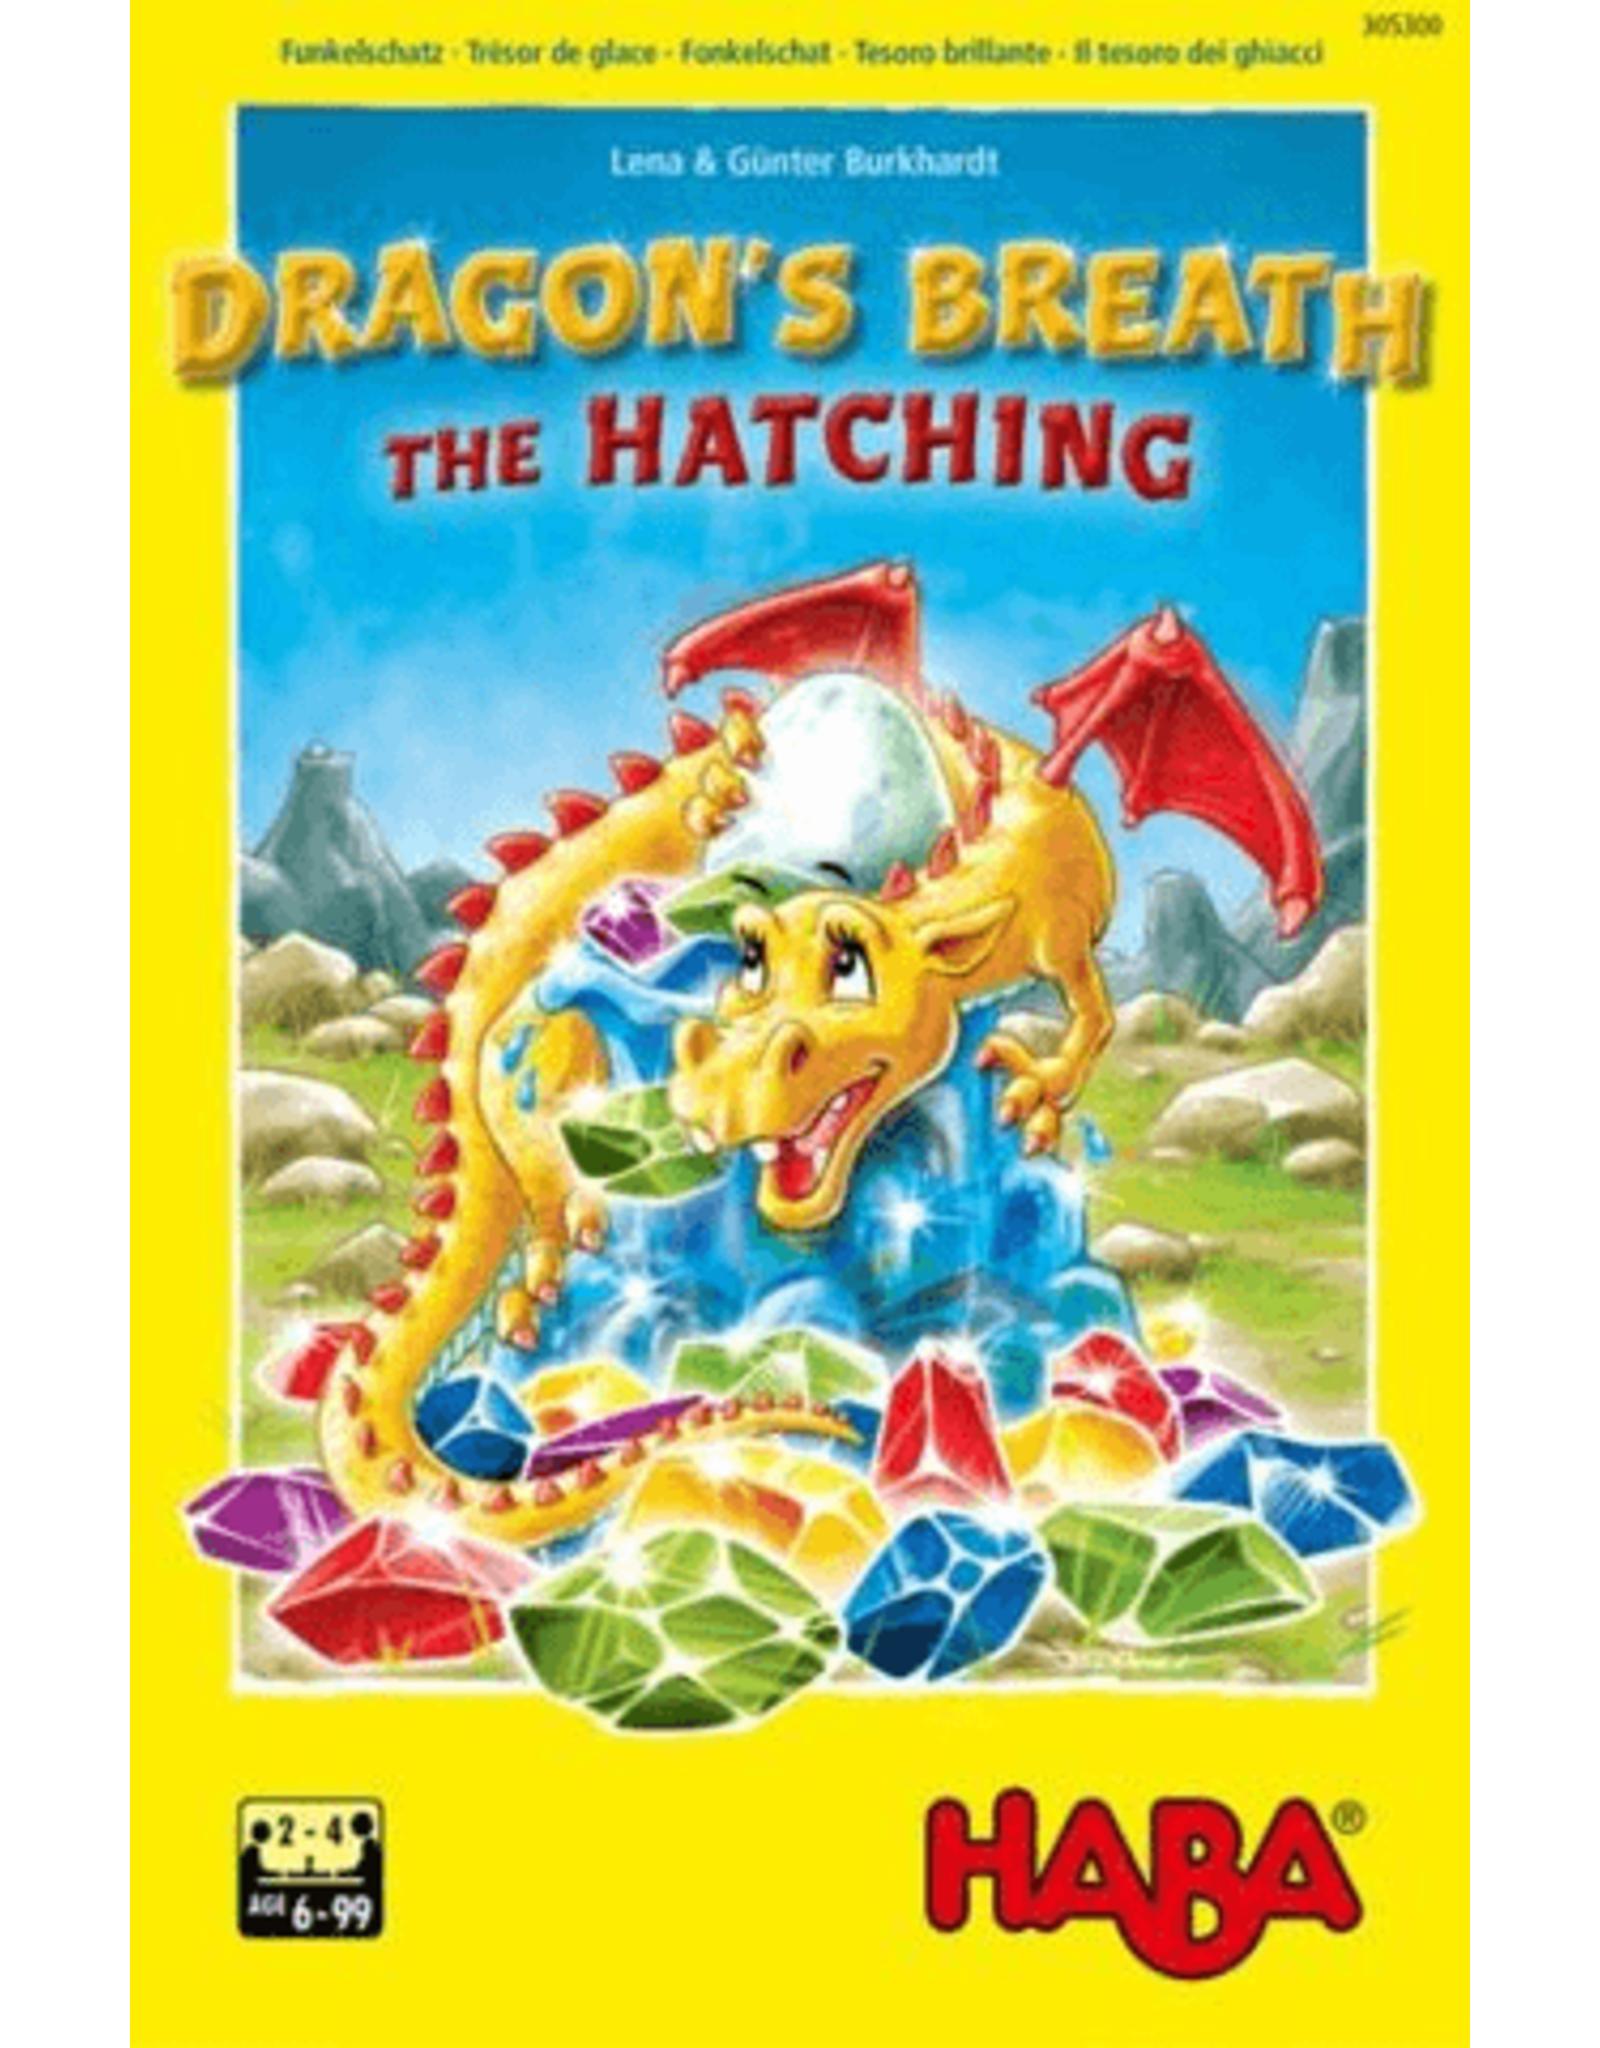 Haba Dragon's Breath The Hatching